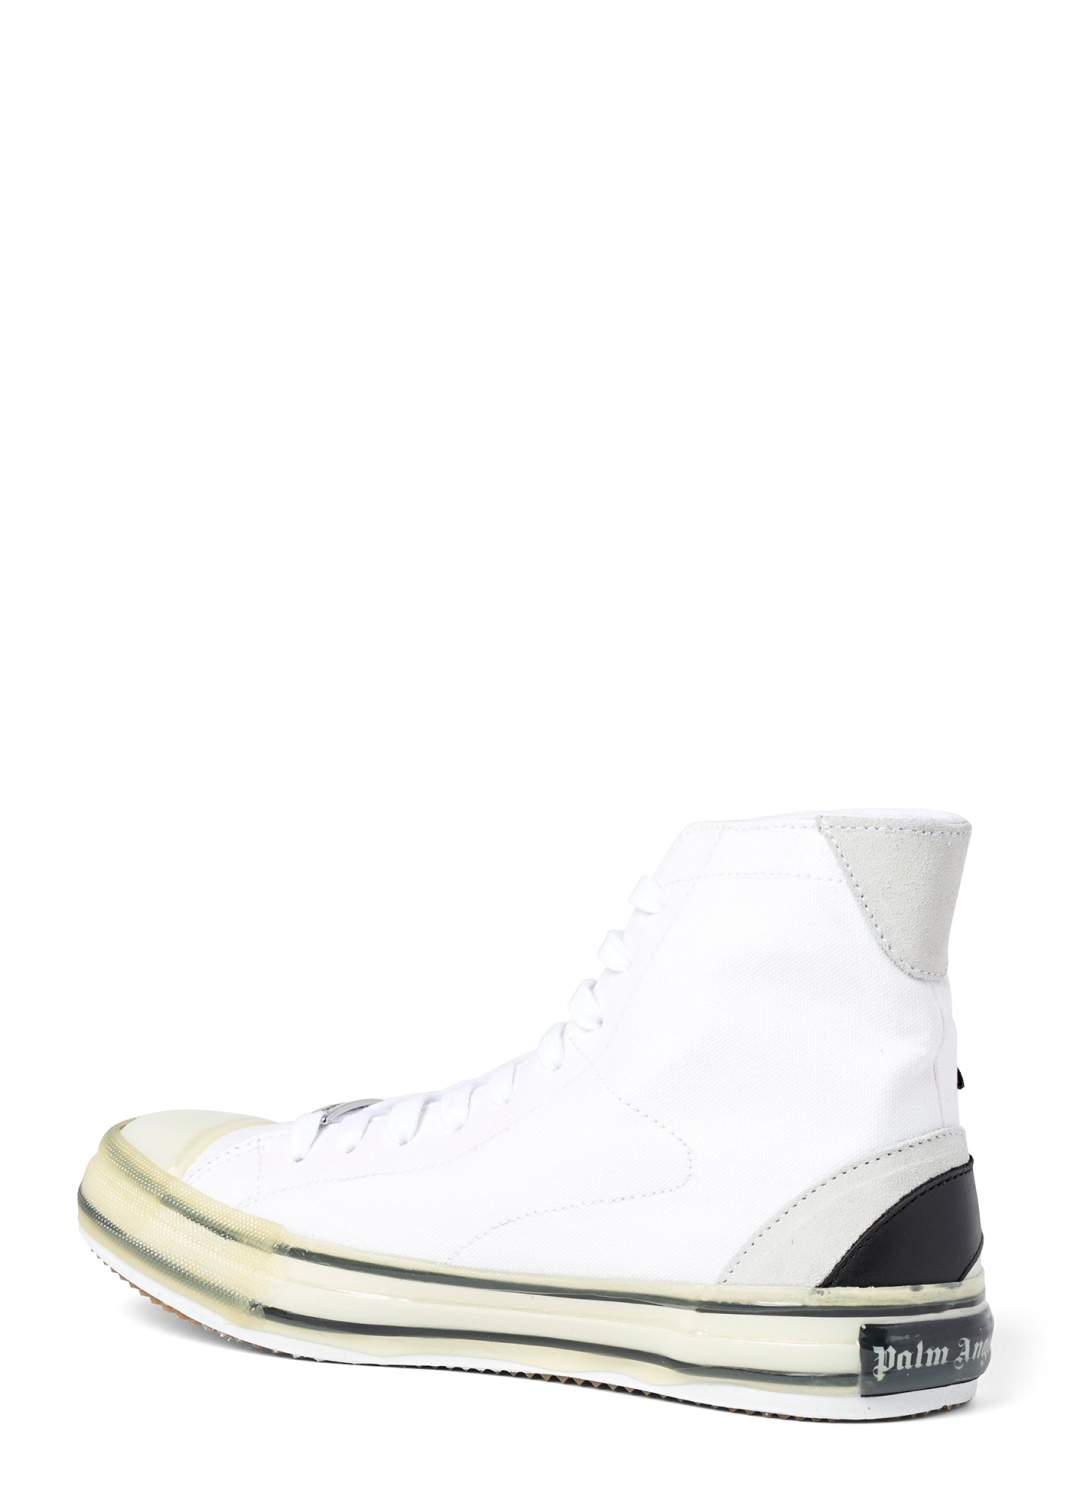 VULC PALM HIGH TOP WHITE BLACK image number 2